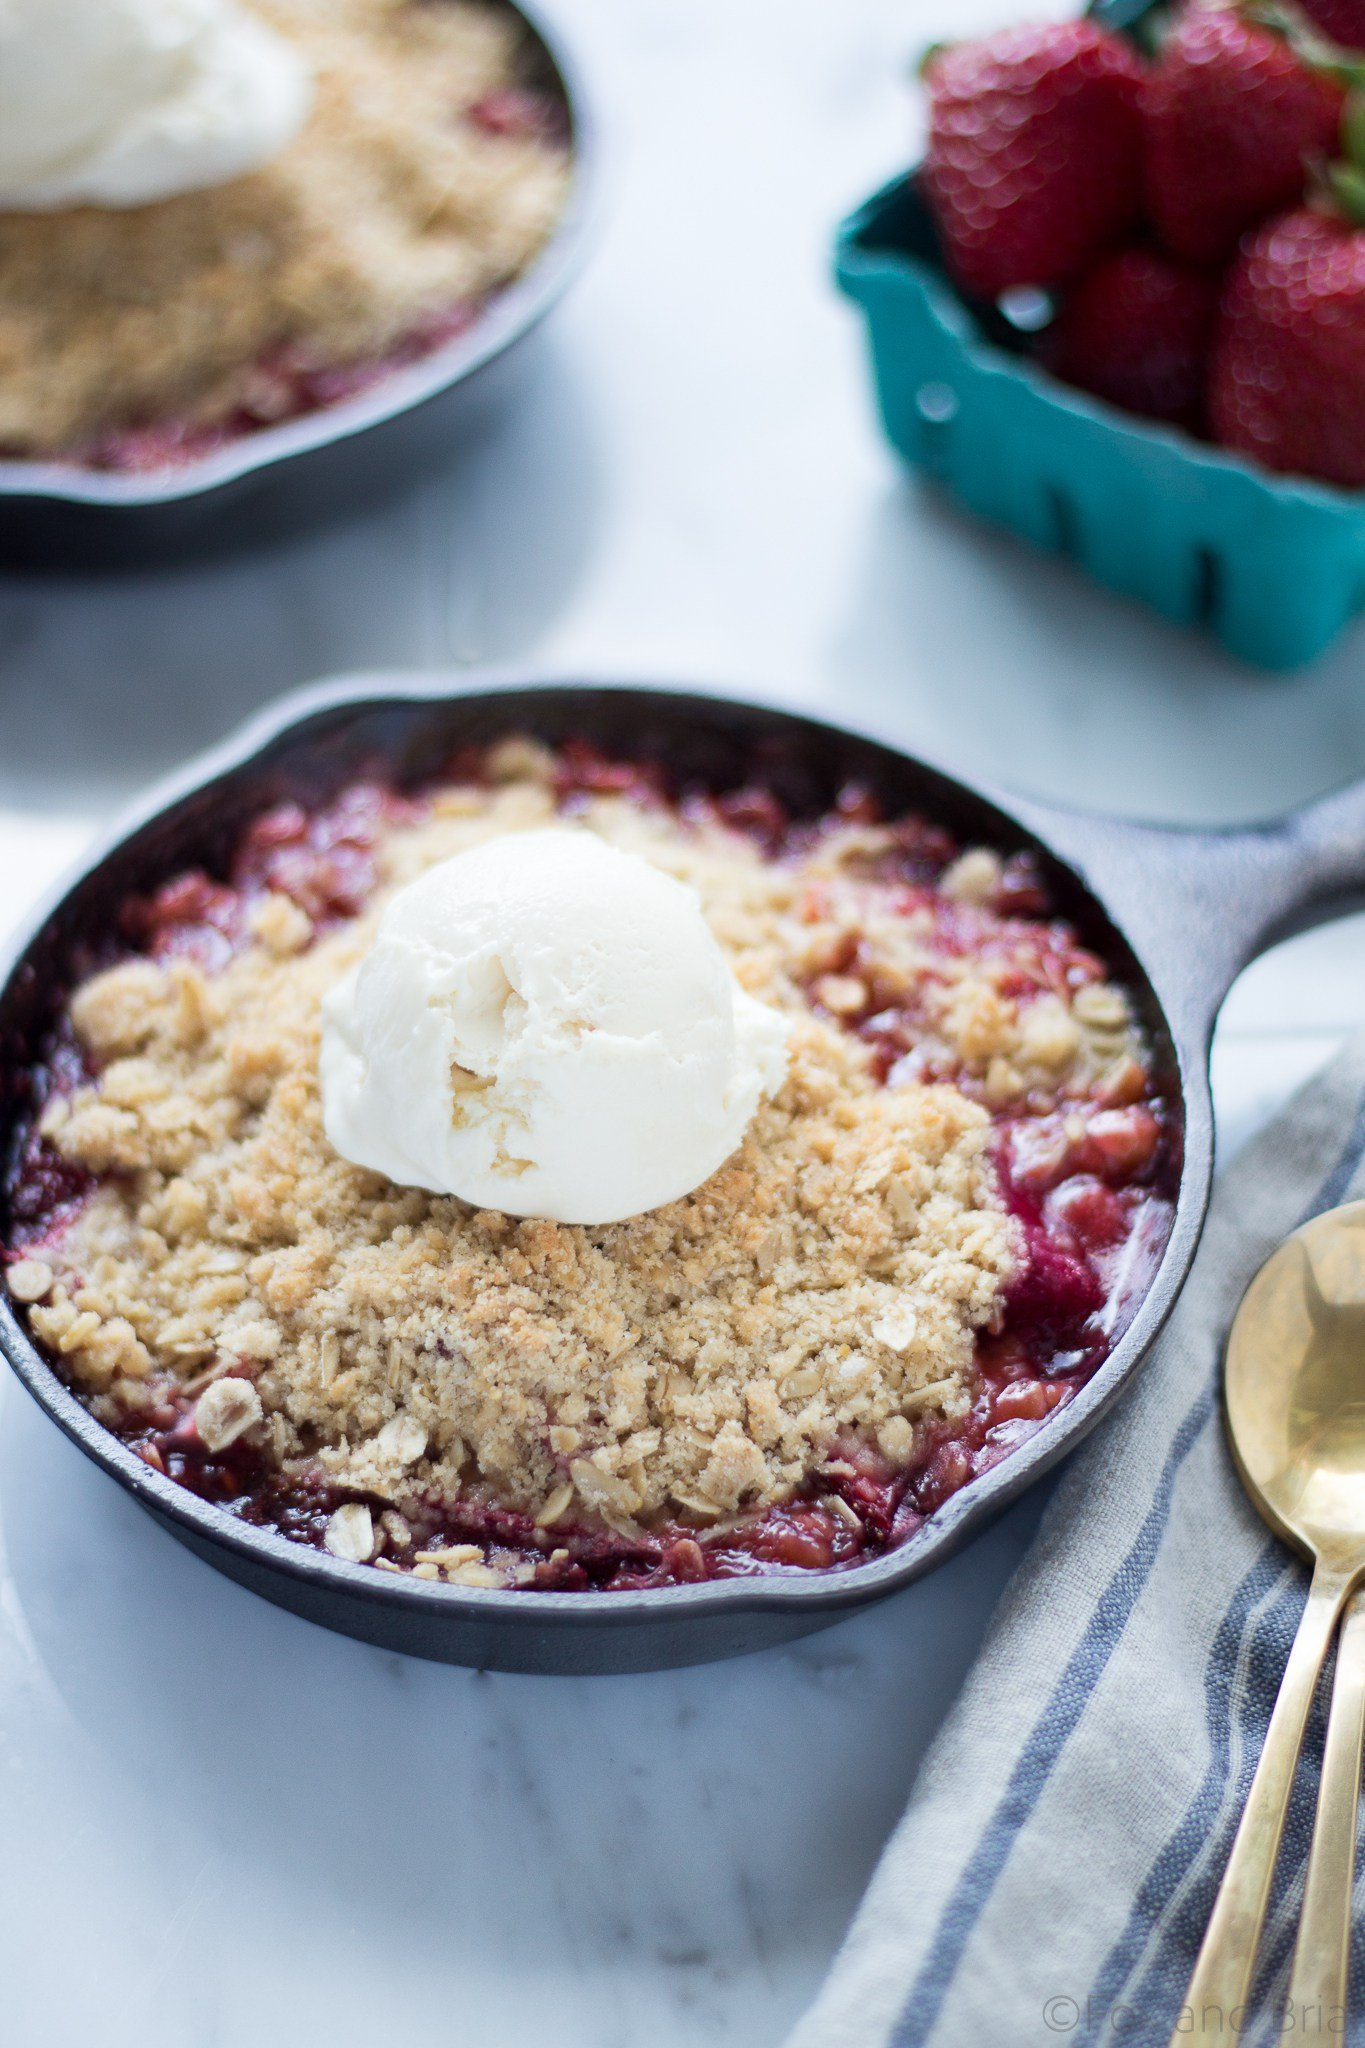 strawberry-rhubarb-crisp-12-of-13